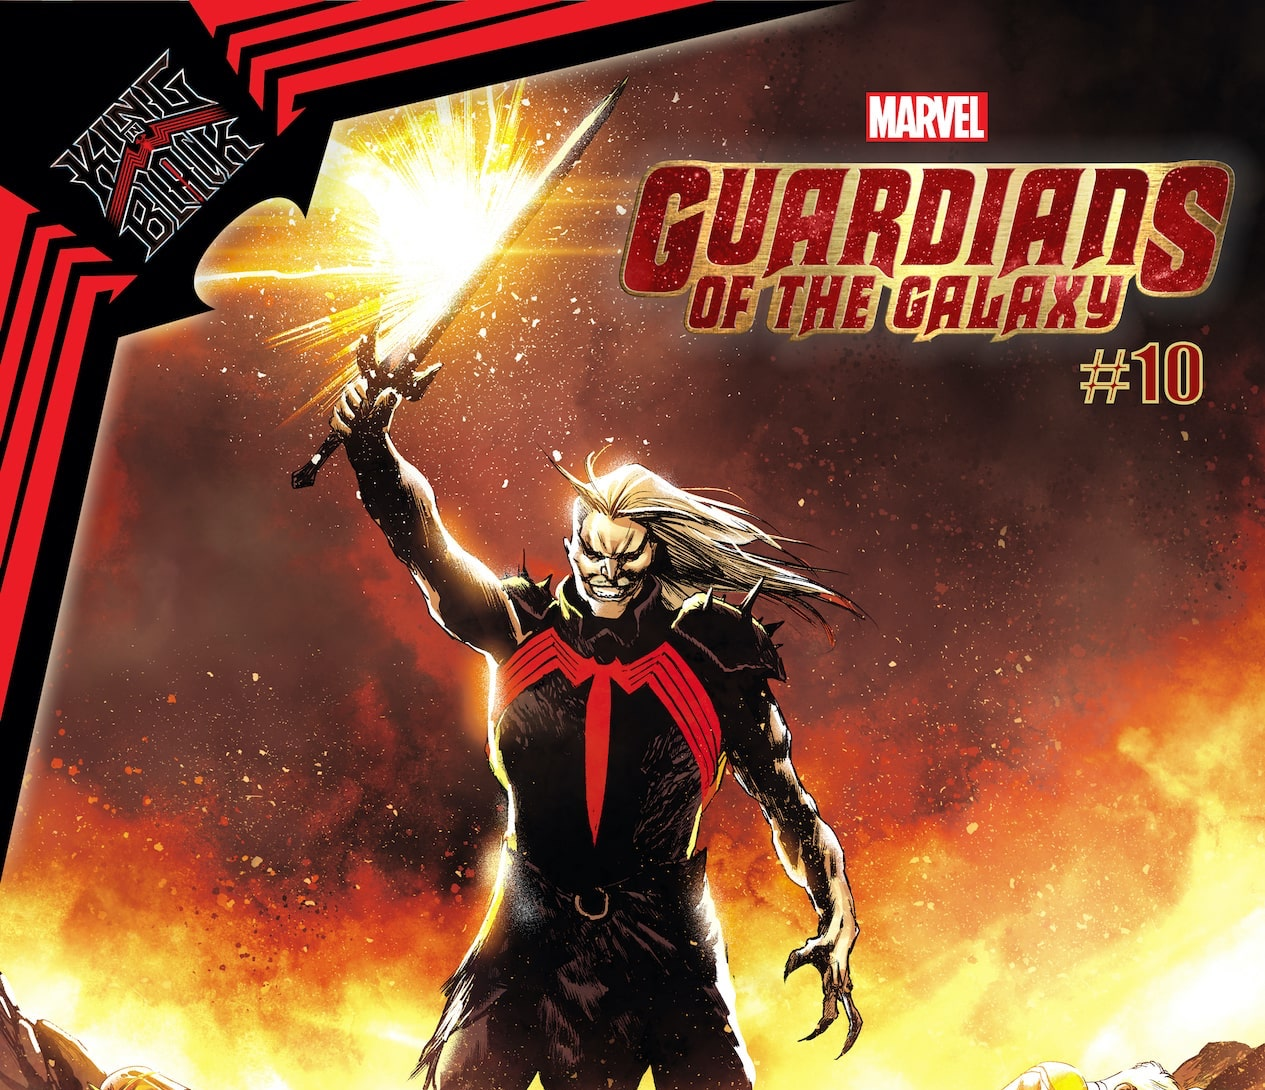 EXCLUSIVE Marvel First Look: Guardians of the Galaxy #10